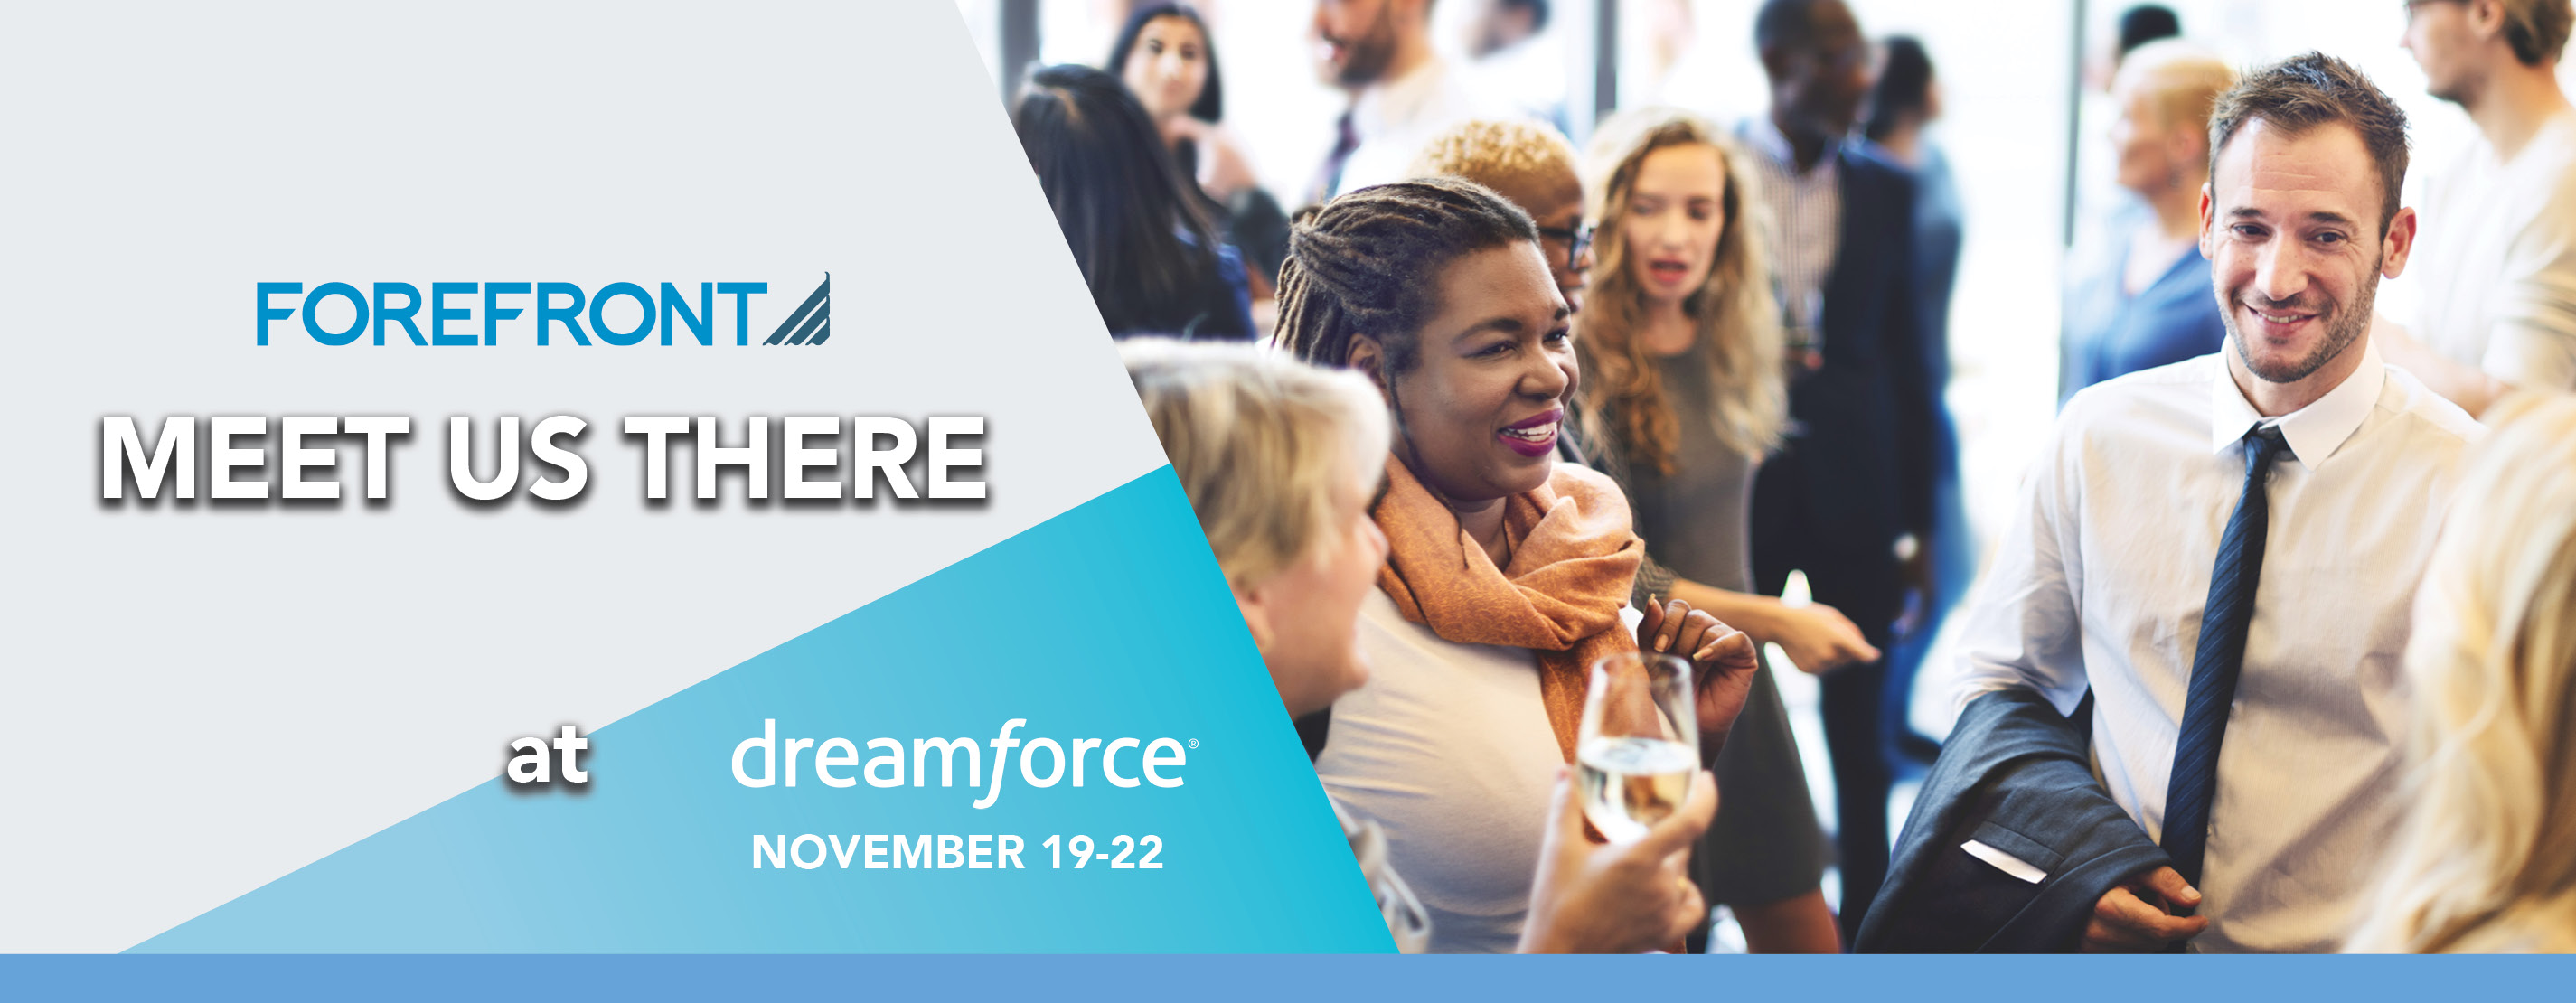 ForeFront: Meet Us at Dreamforce